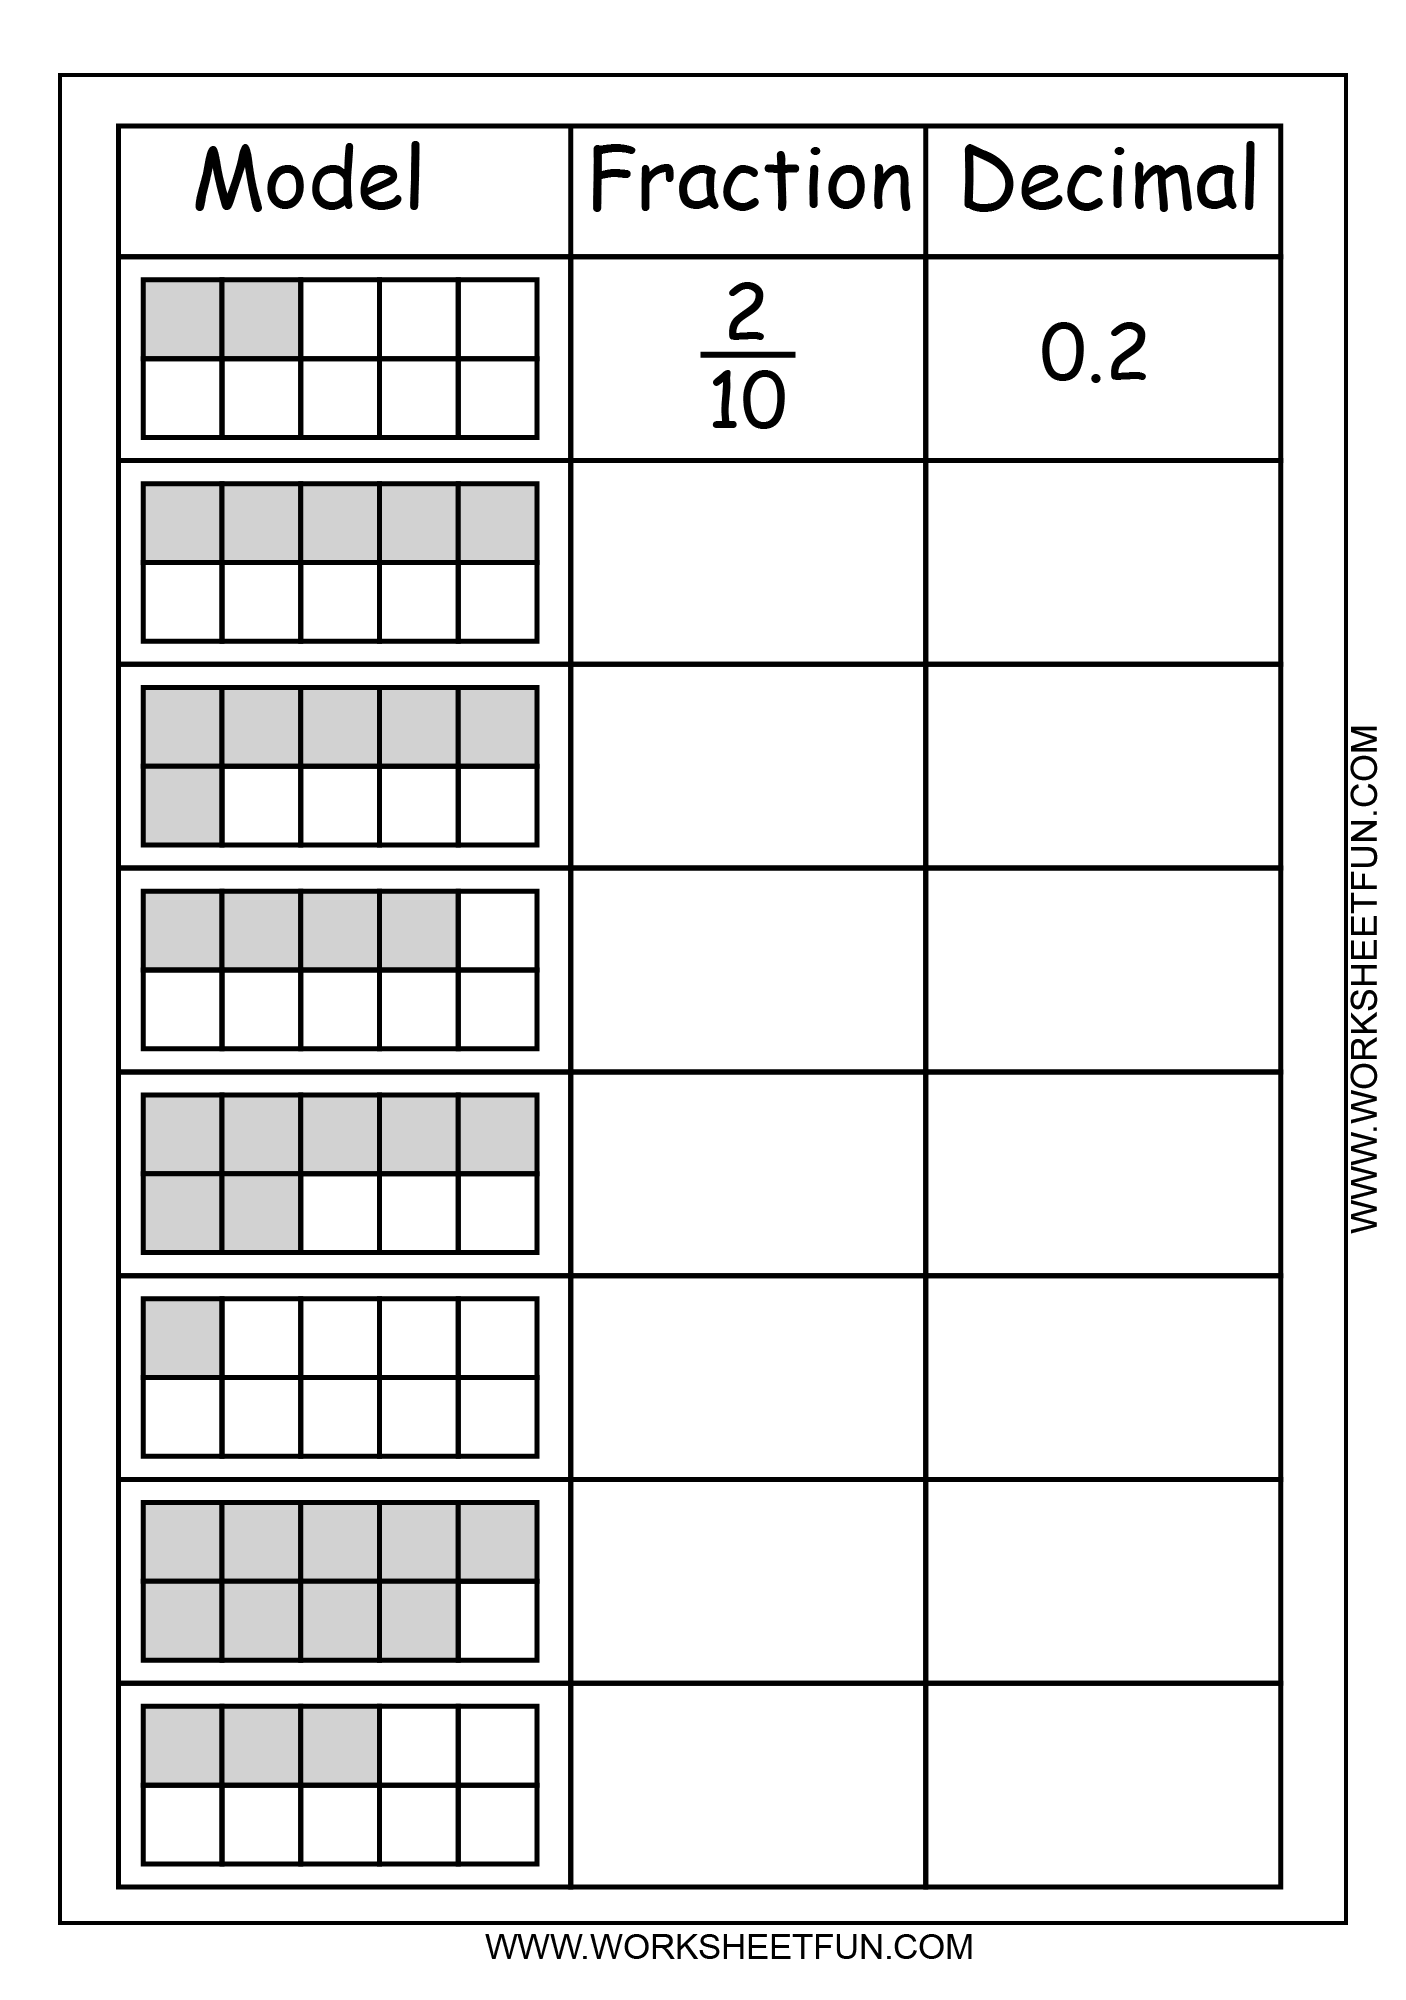 Model Fraction Decimal 2 Worksheets Free Printable